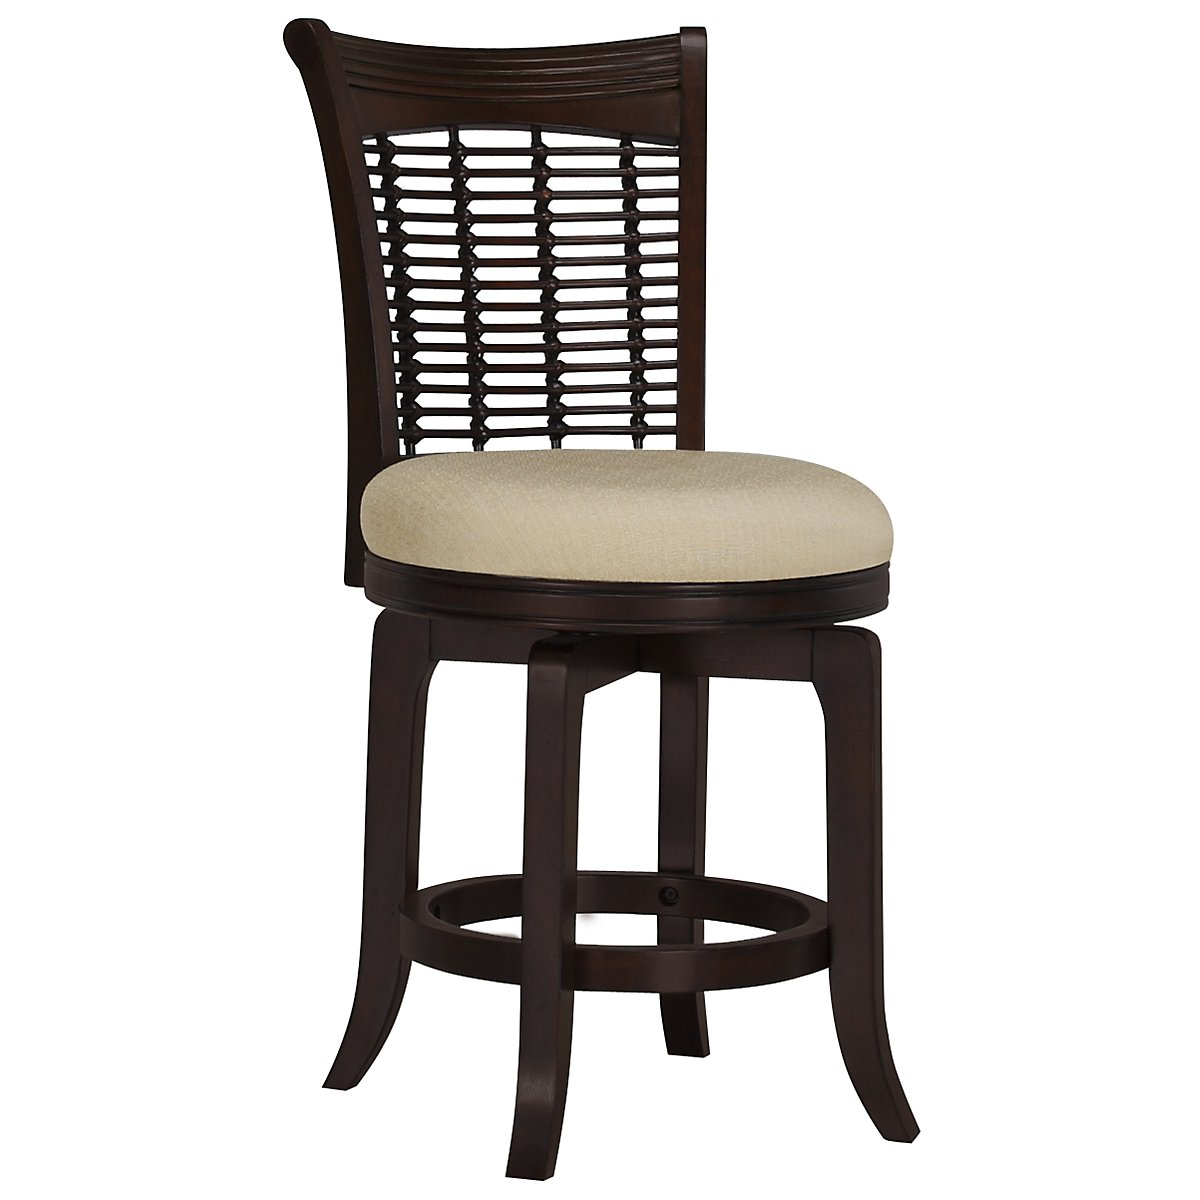 "Bayberry Dark Tone 24"" Swivel Barstool"